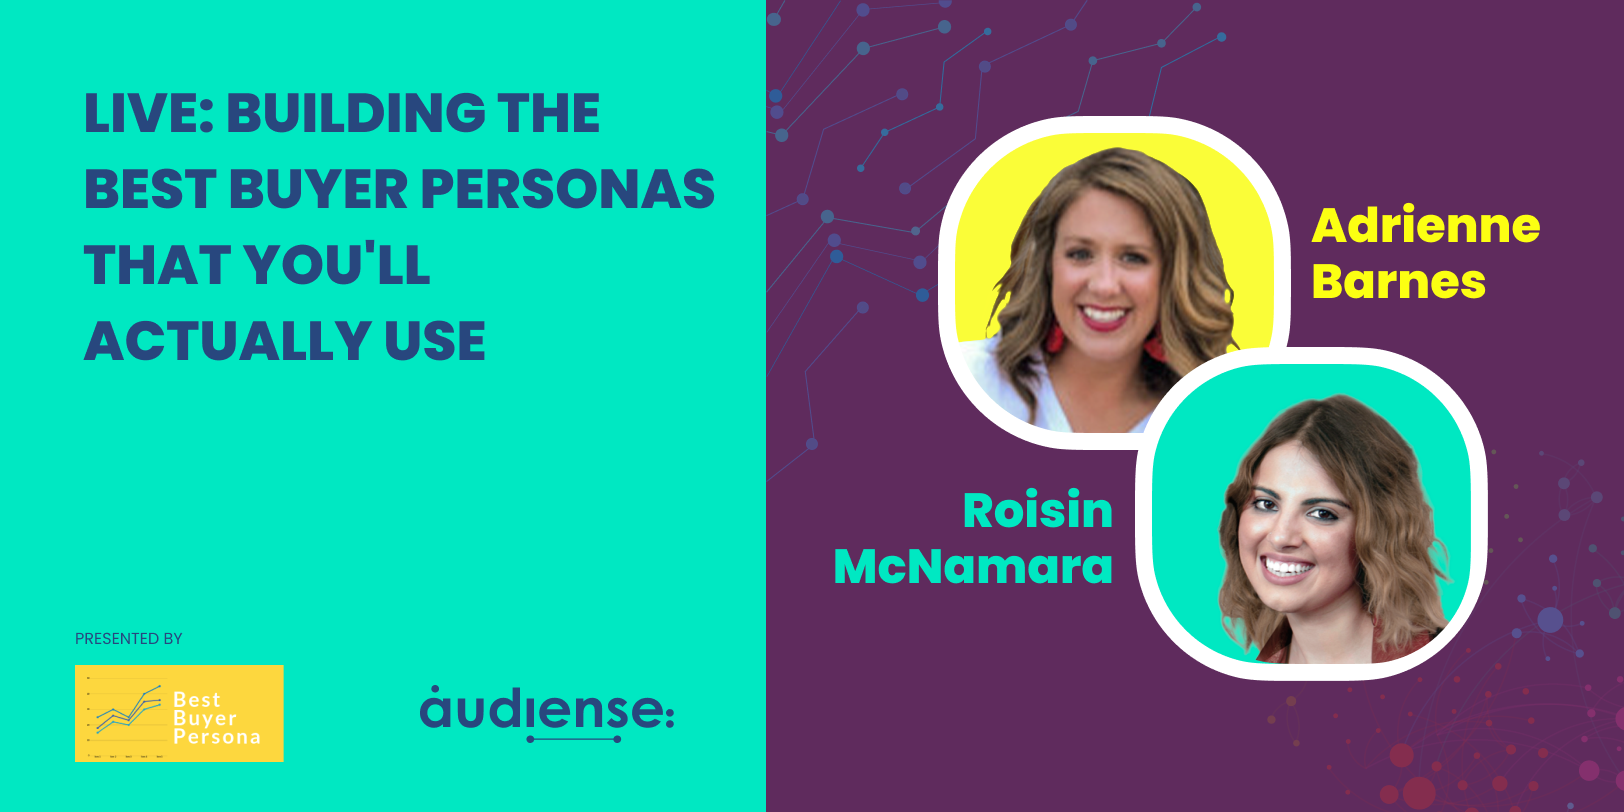 Build the Best Buyer Personas That You'll Actually Use